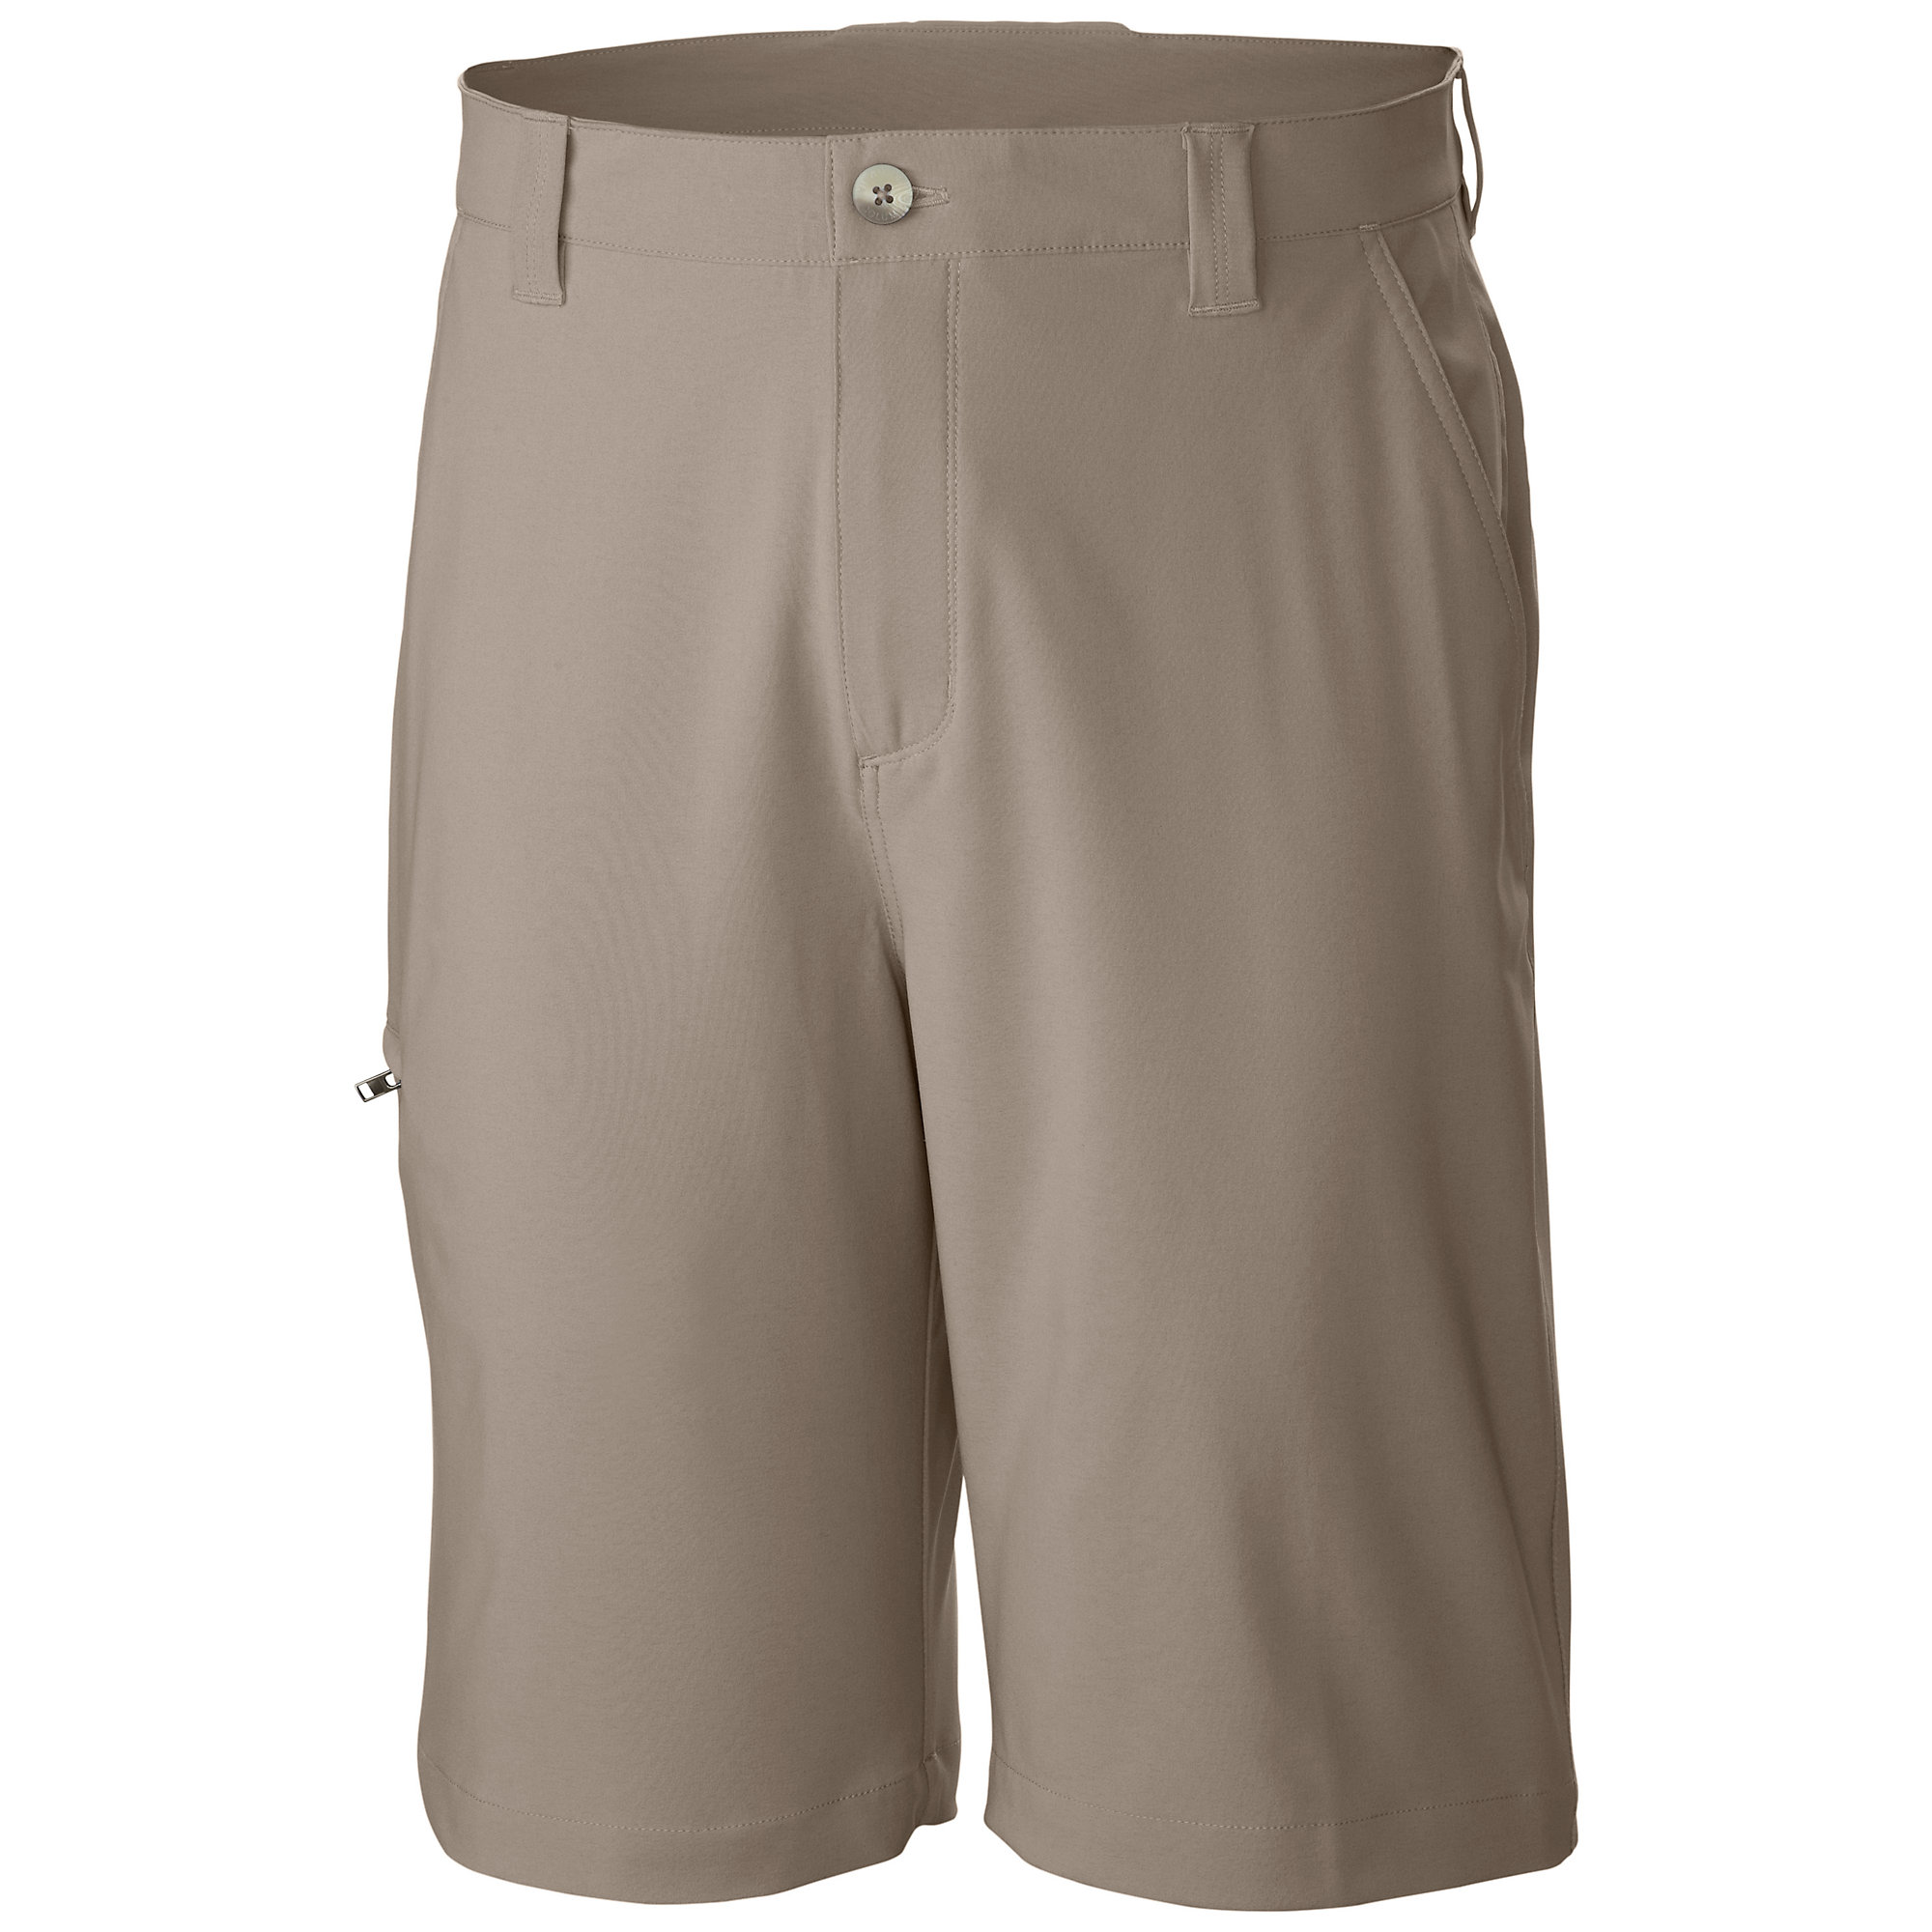 Columbia Grander Marlin Offshore Short